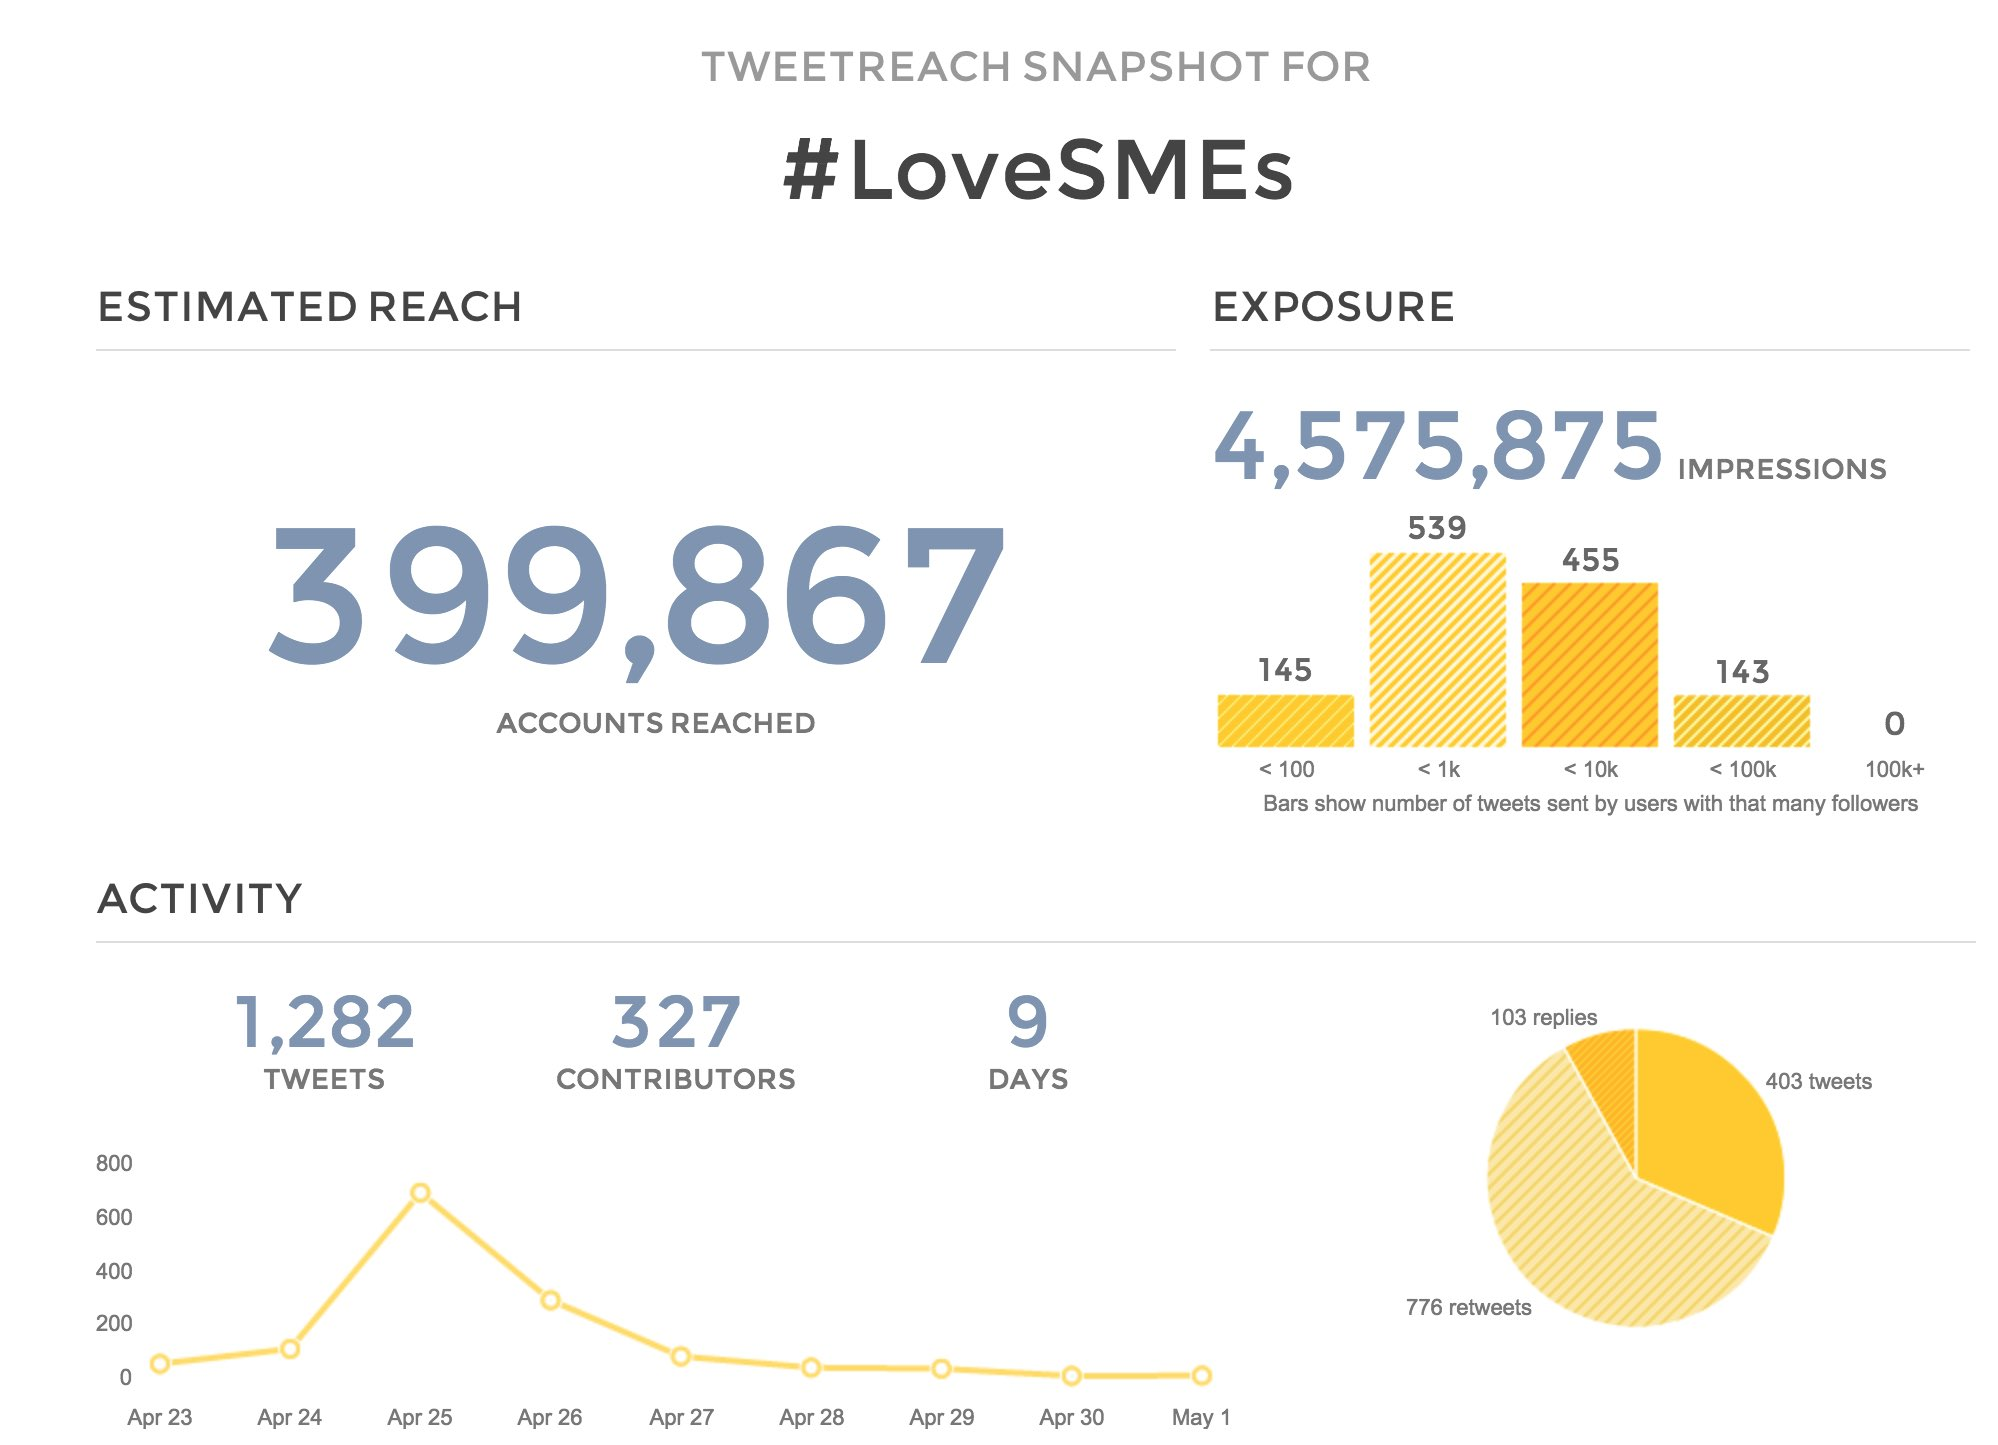 tweetreach-snapshot-headline-stats-sme-awards-2015